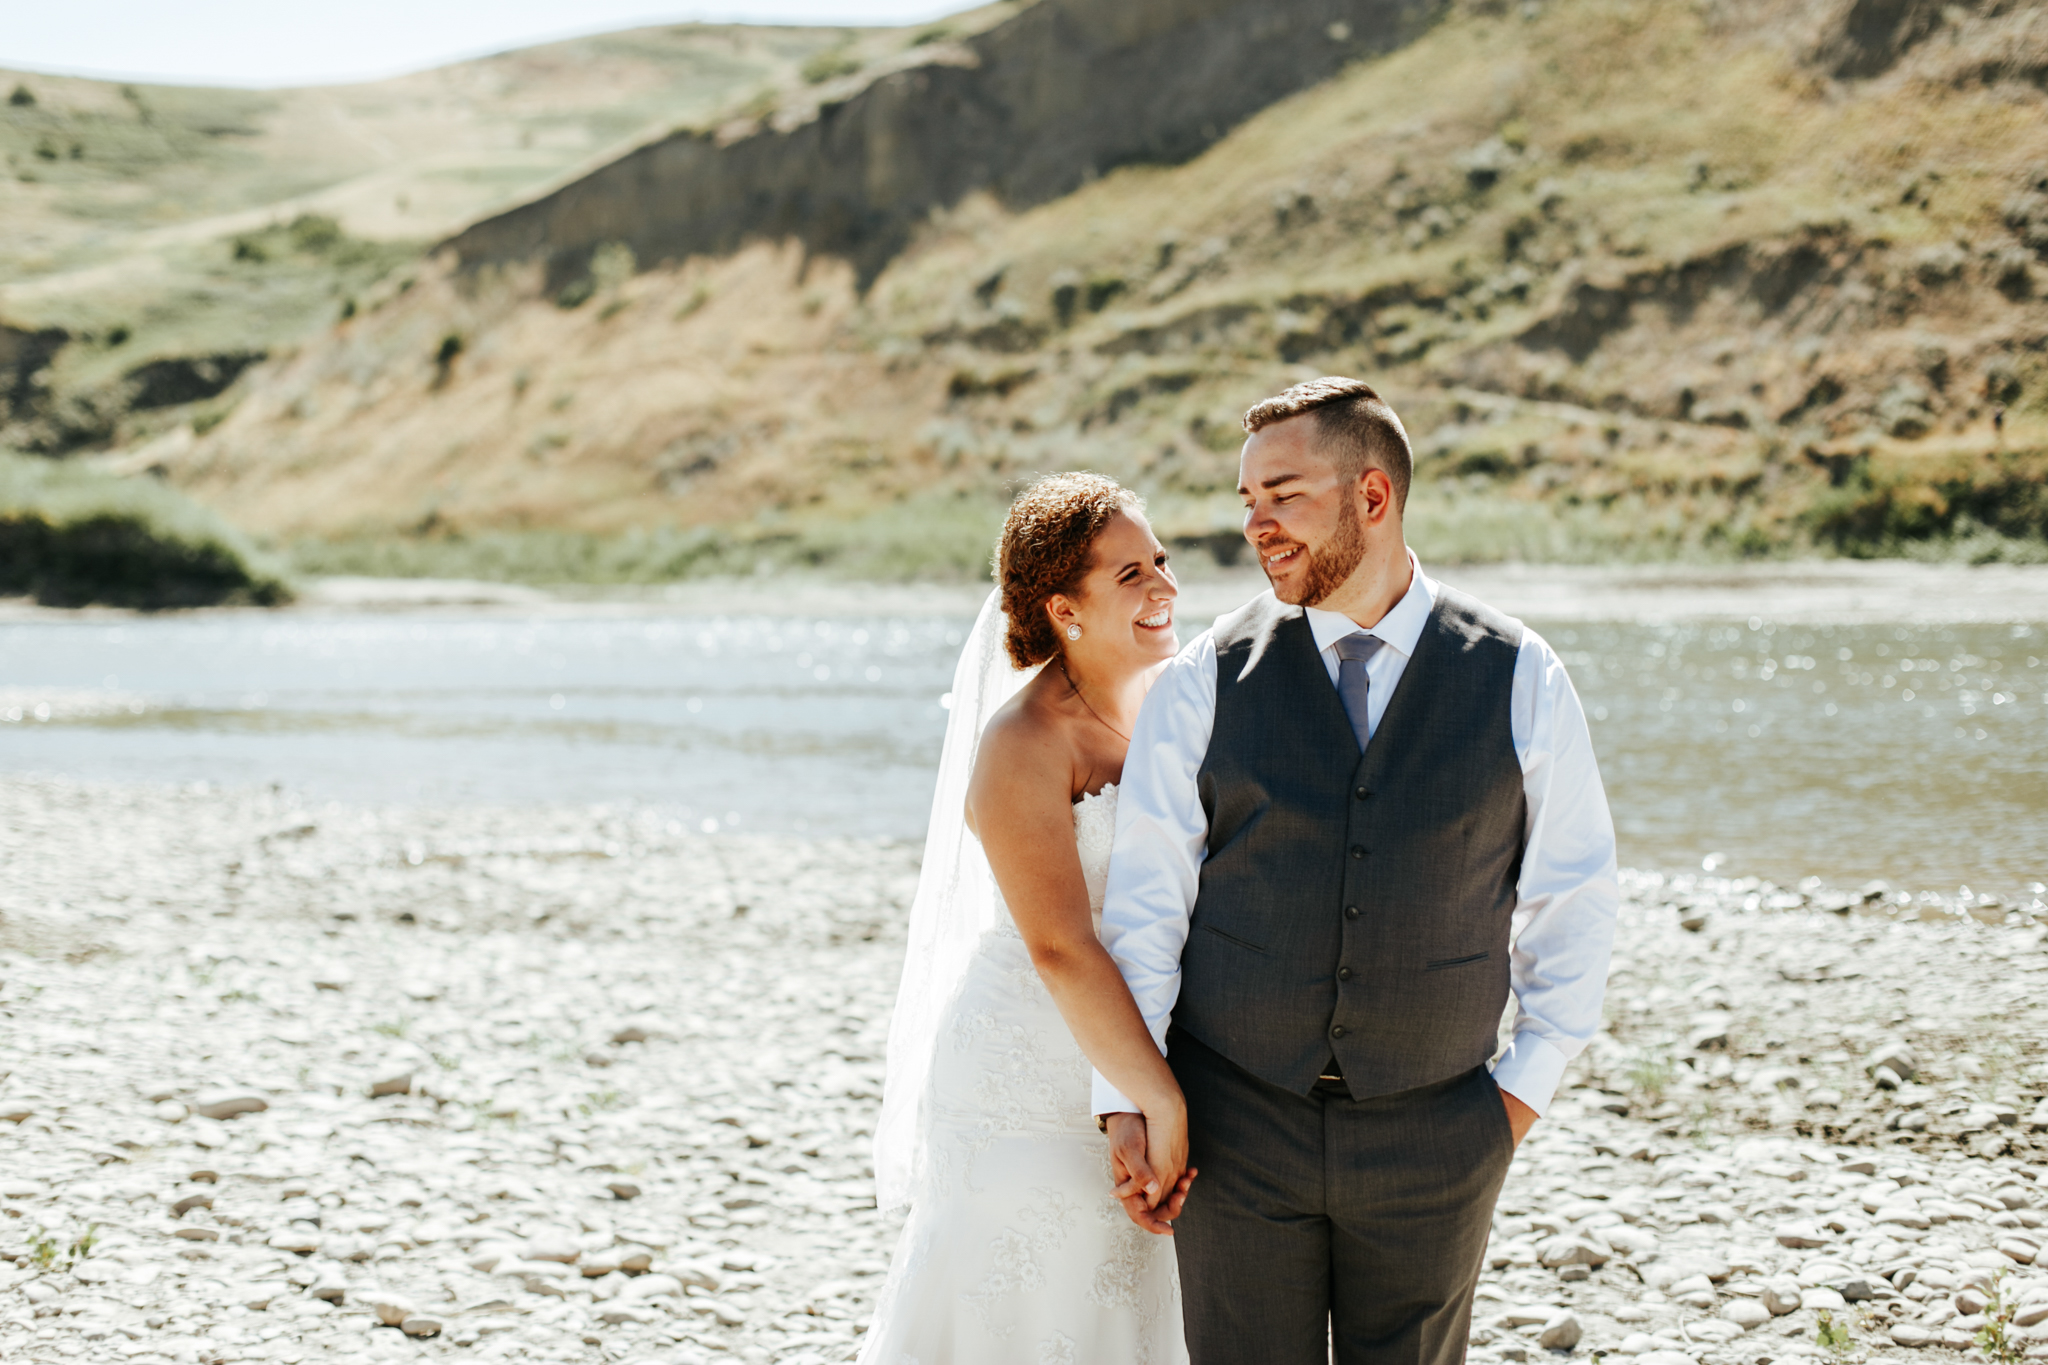 lethbridge-wedding-photographer-love-and-be-loved-photography-trent-danielle-galt-reception-picture-image-photo-122.jpg